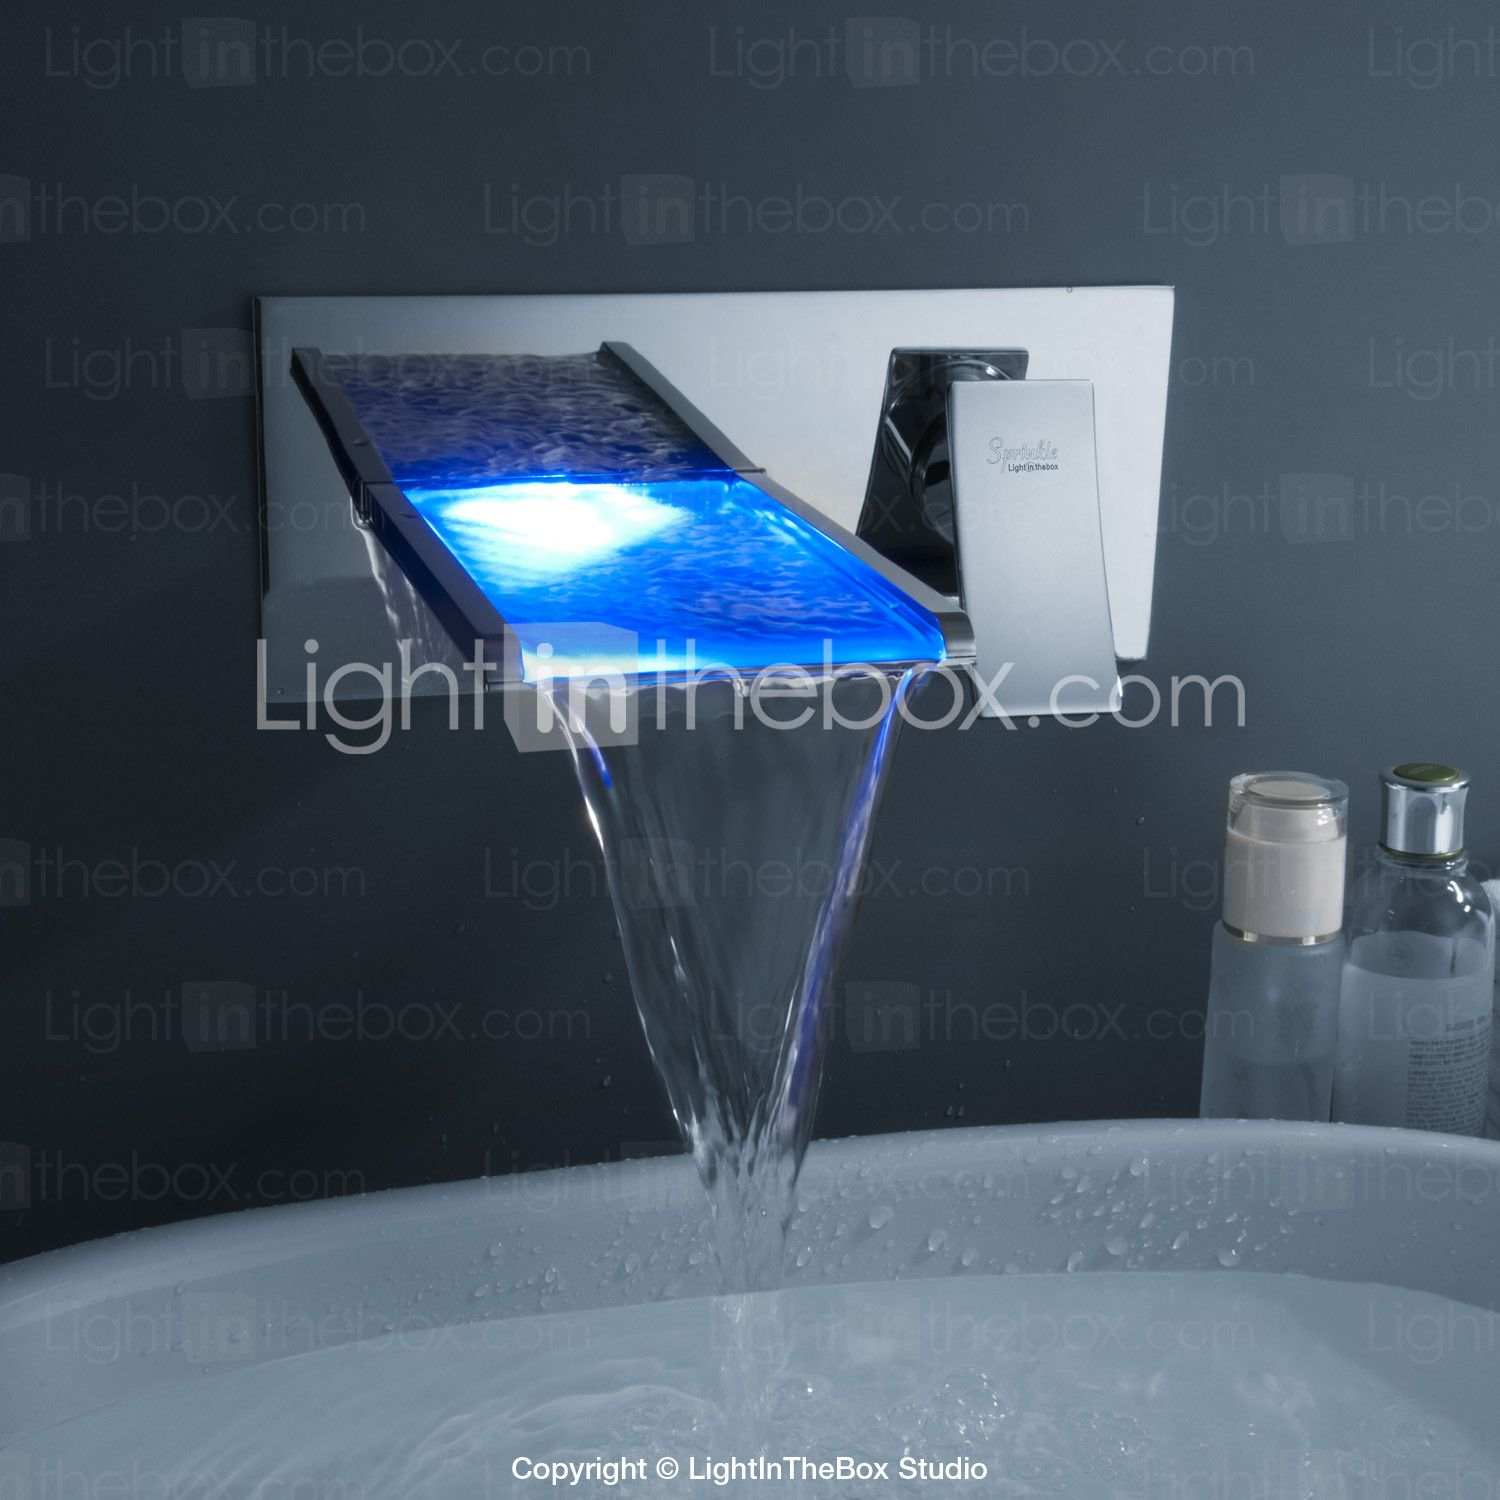 Sprinkle® by Lightinthebox - Color Changing LED Waterfall Bathroom ...